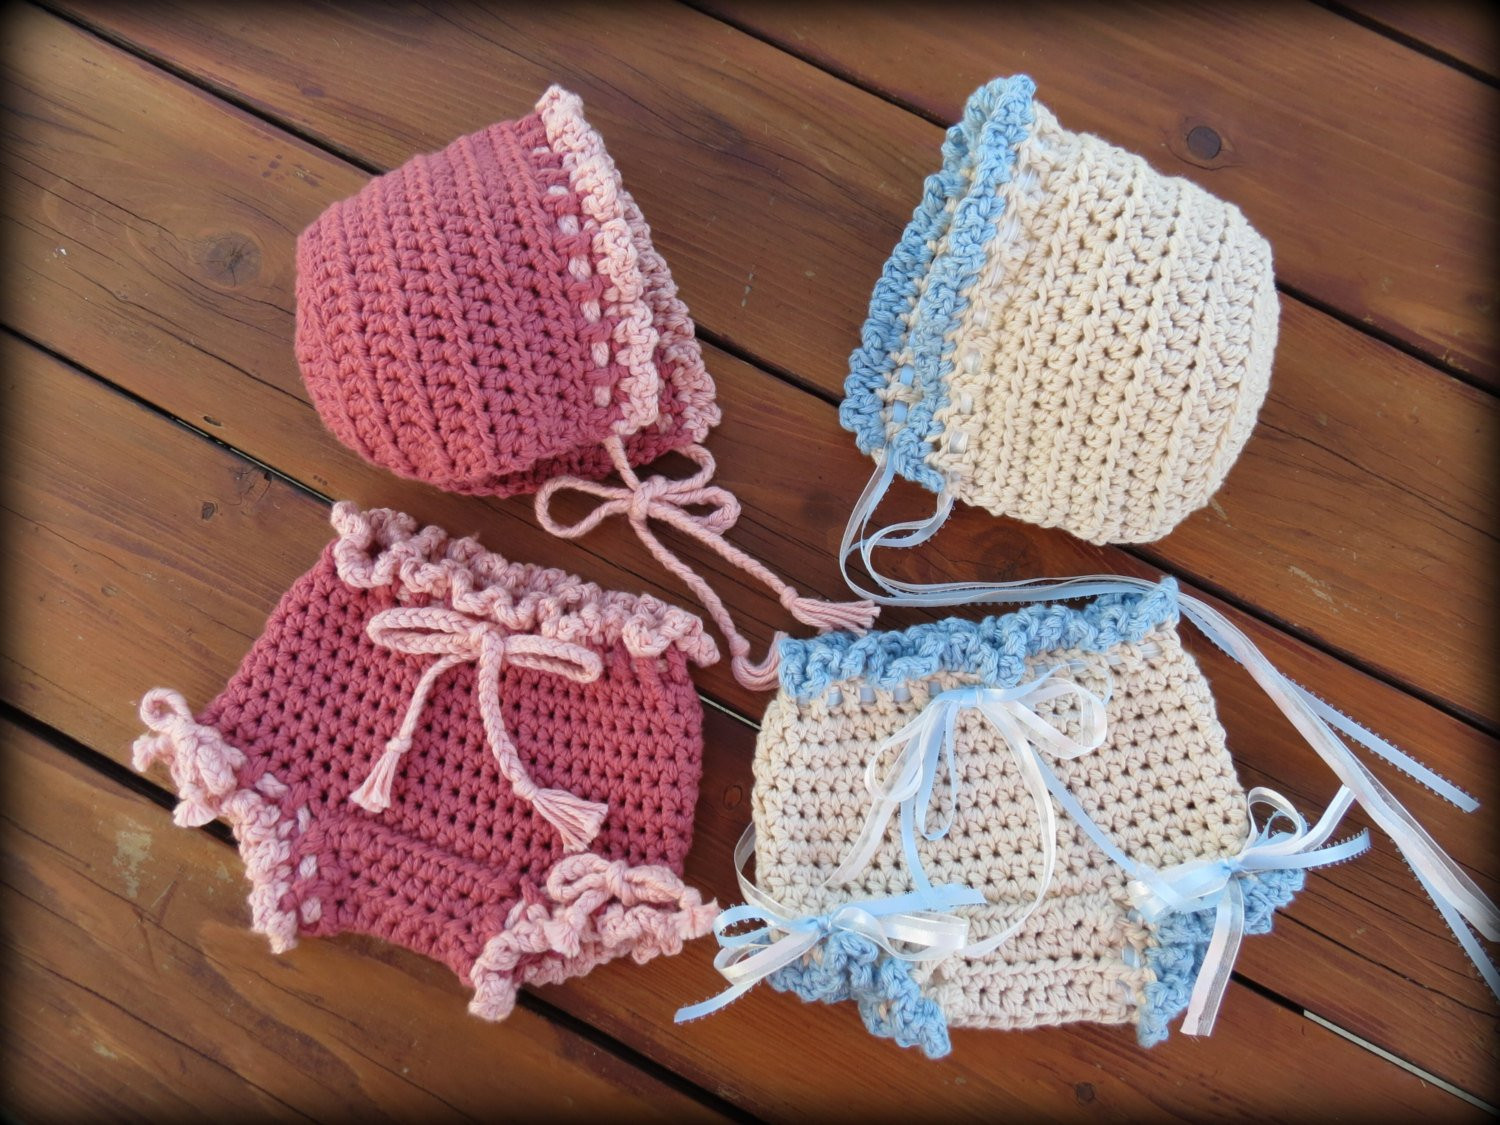 Luxury Crochet Diaper Cover Pattern Crochet Baby Hat Pattern Crochet Baby Diaper Cover Of Wonderful 48 Photos Crochet Baby Diaper Cover